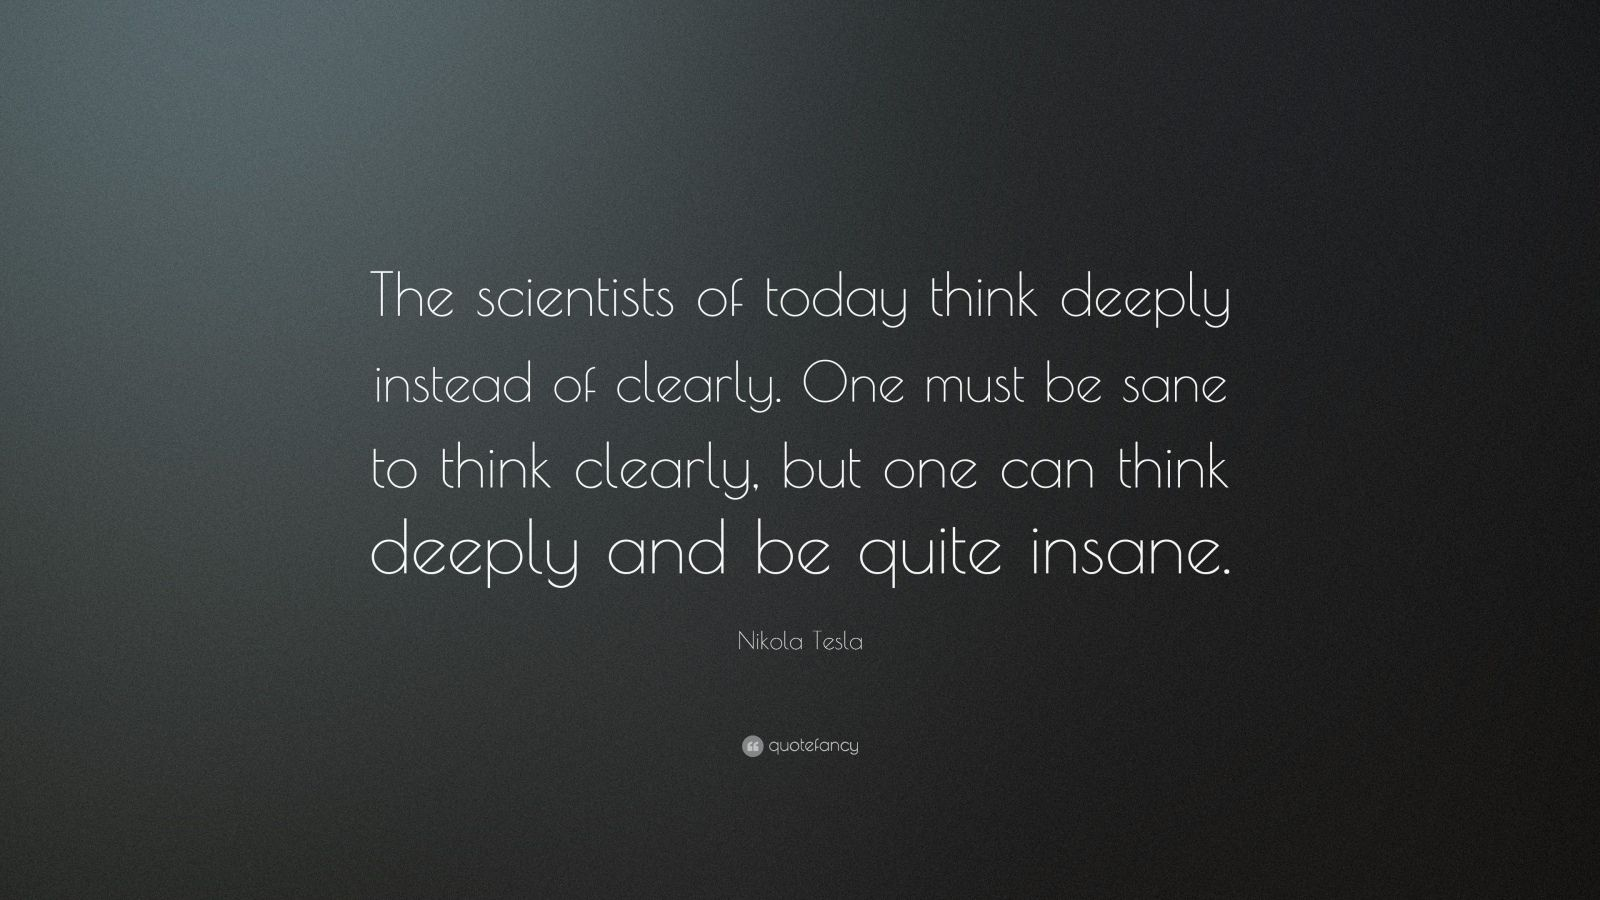 Nikola tesla quote the scientists of today think deeply instead of